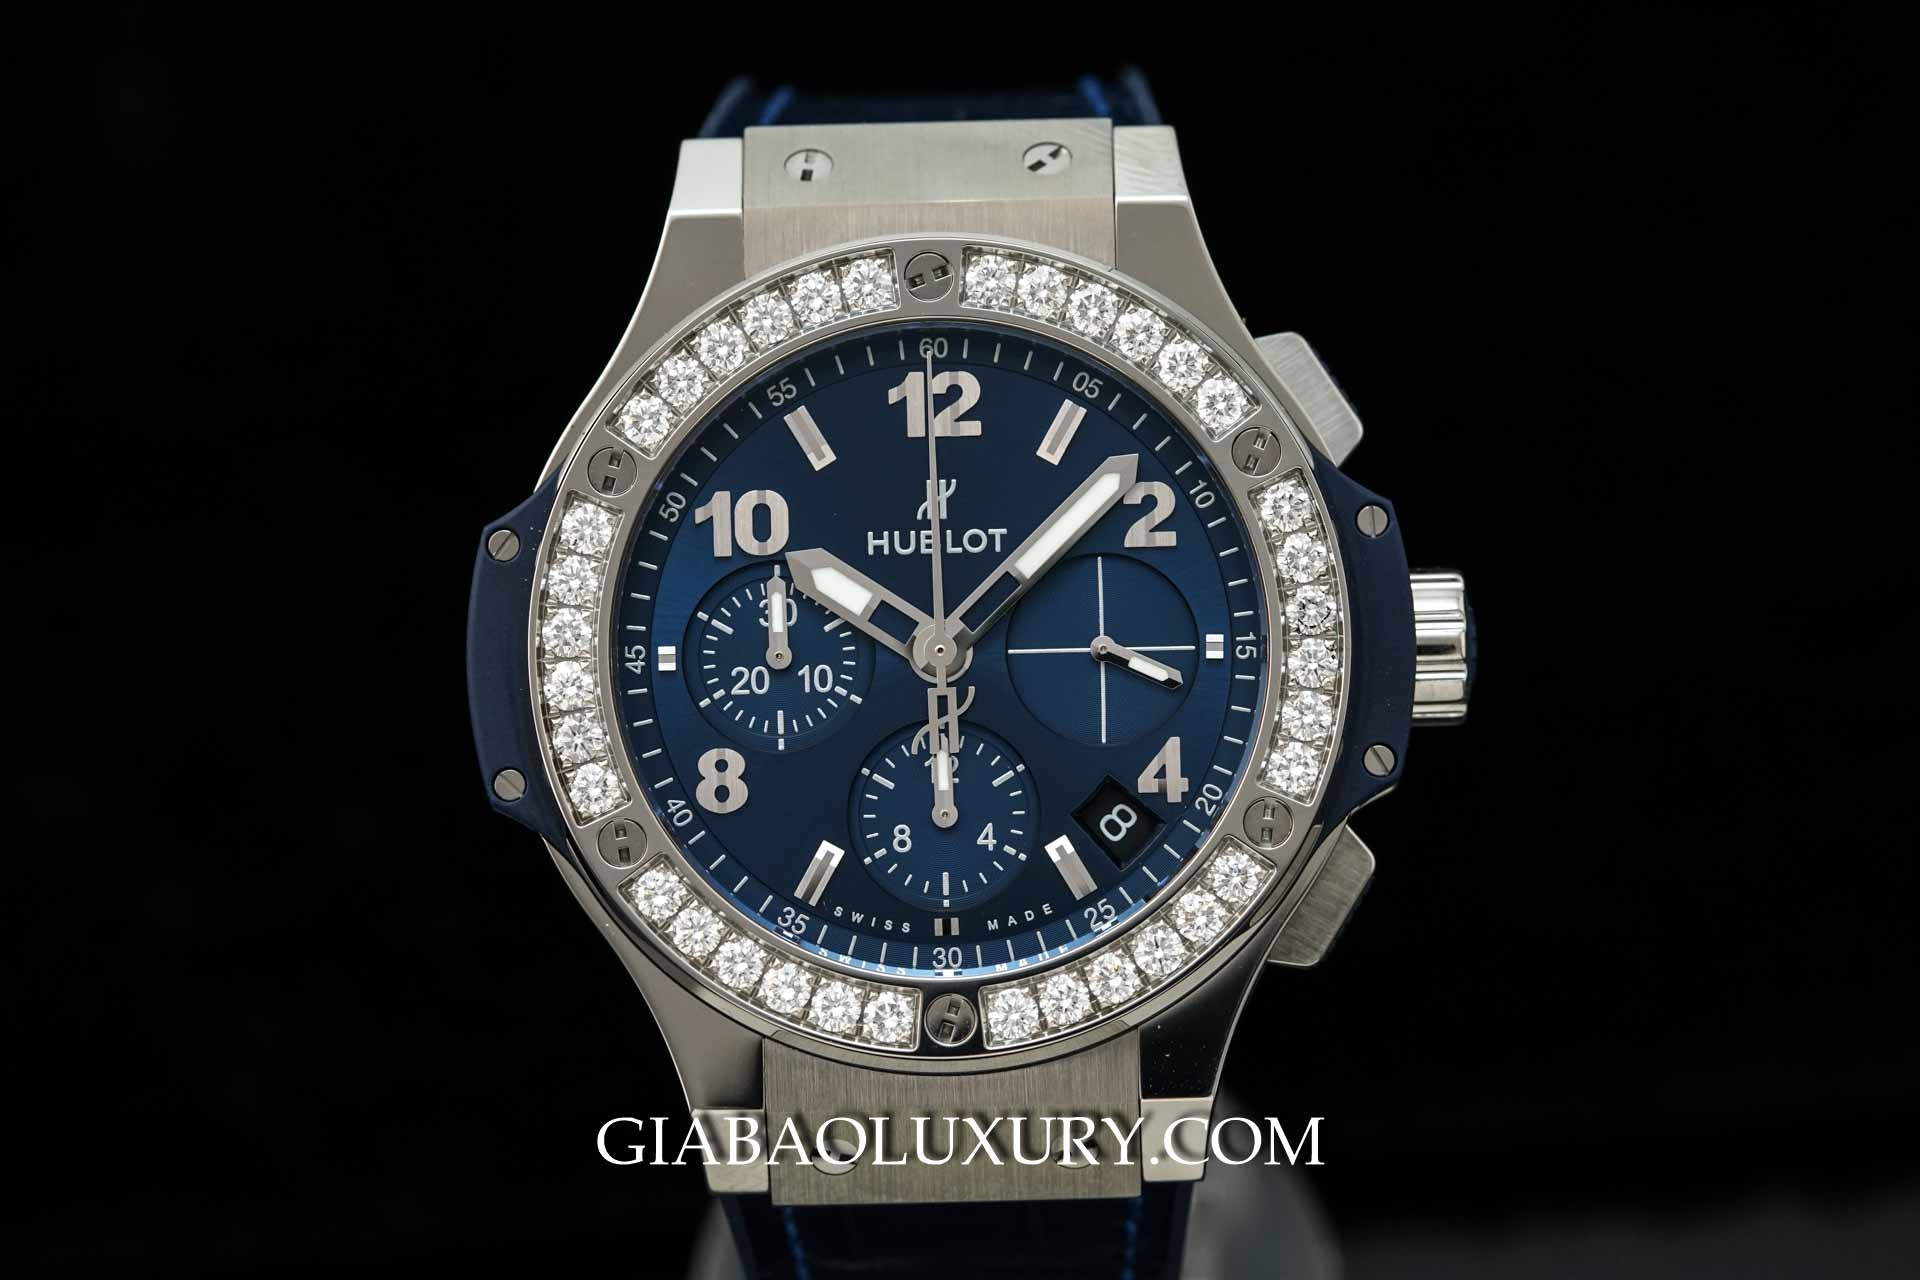 Đồng hồ Hublot Big Bang Steel Blue Diamonds 41mm 341.SX.7170.LR.1204